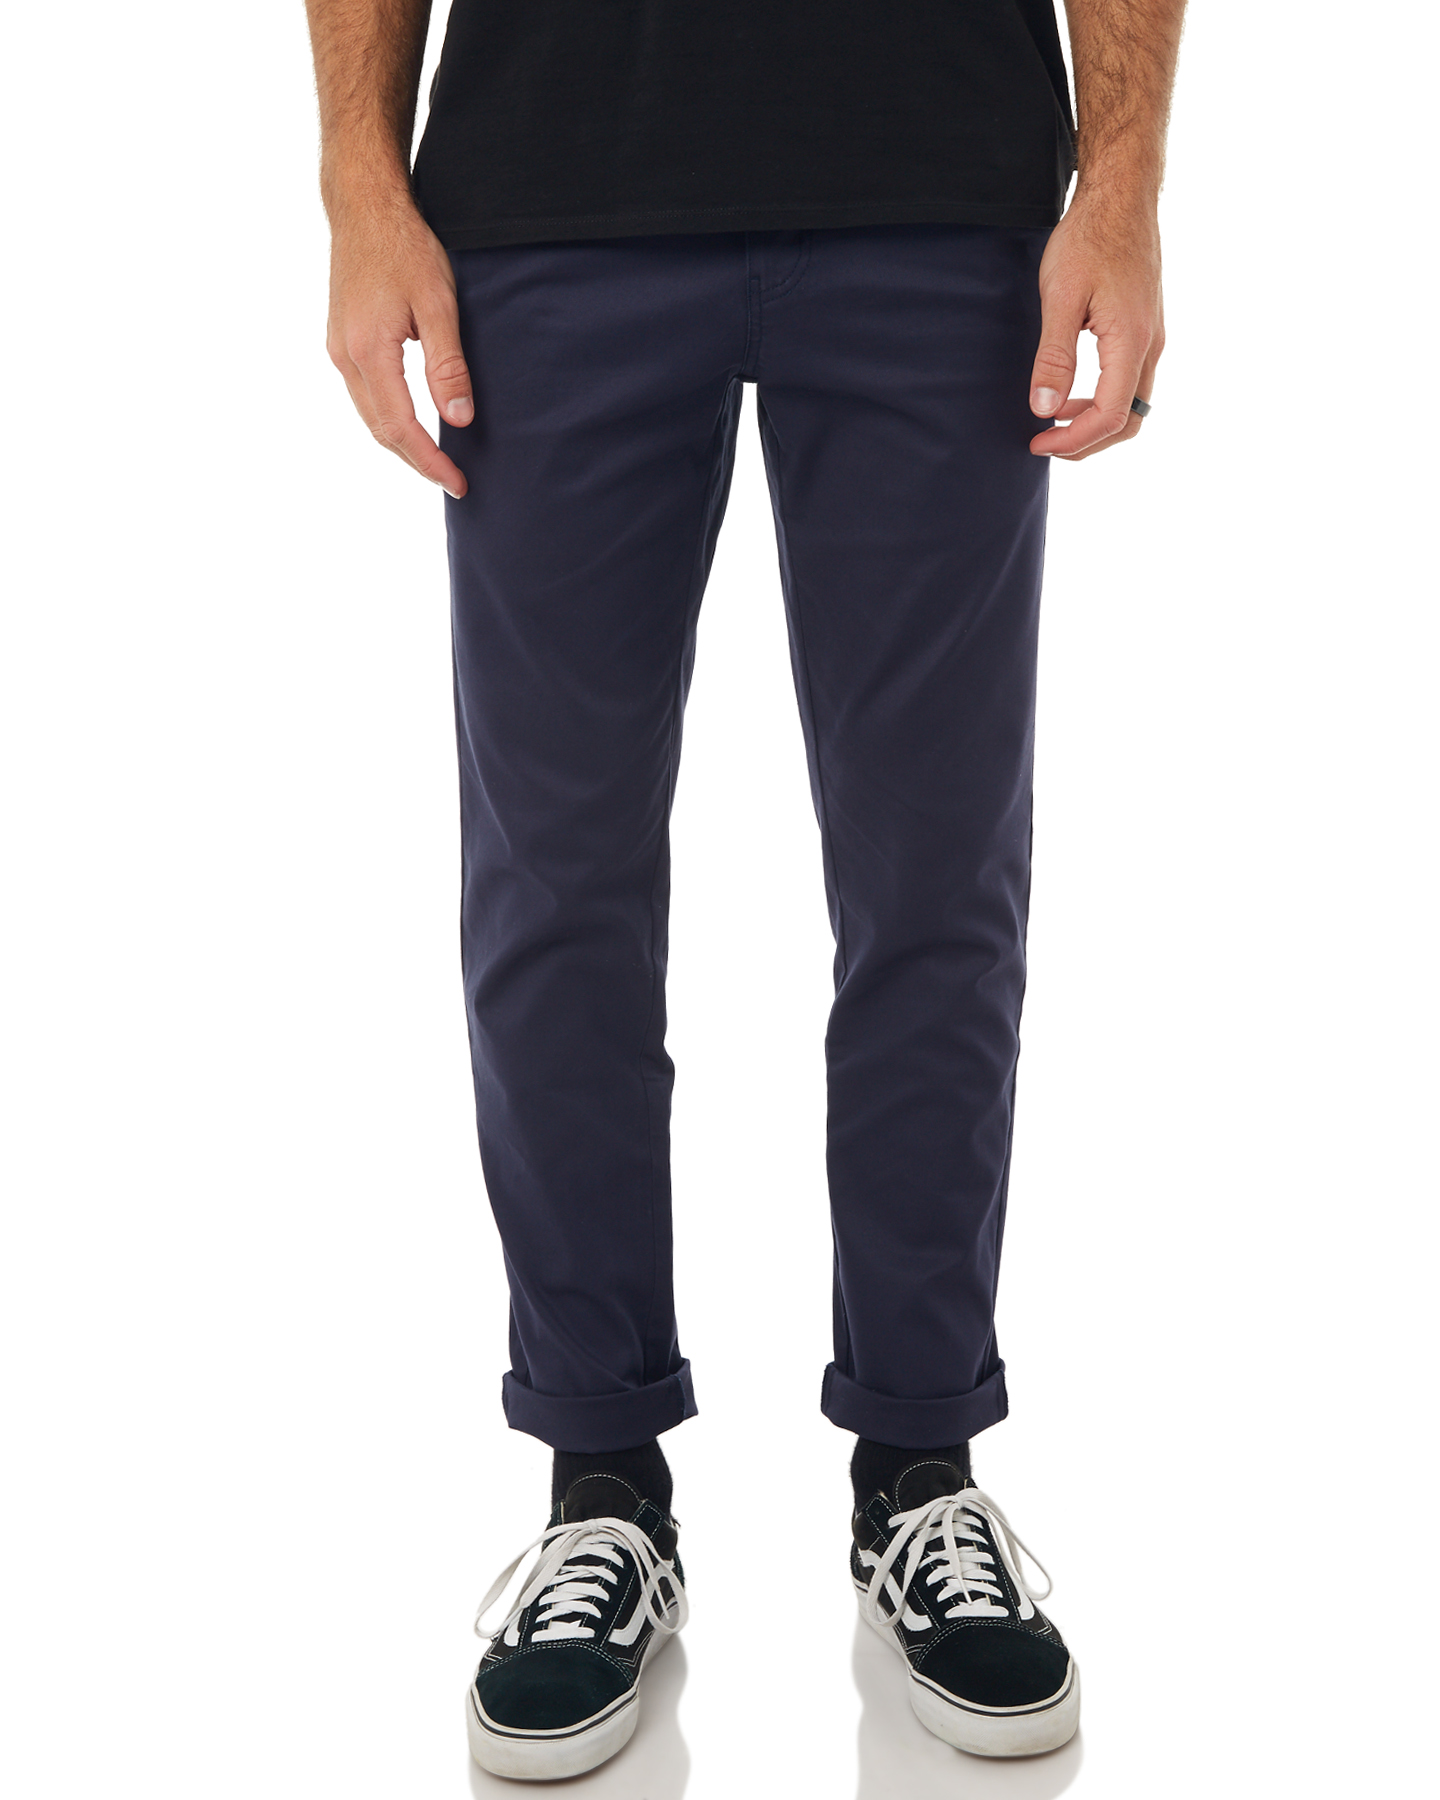 Mens Pants at Macy's come in all styles and sizes. Shop Men's Pants: Dress Pants, Chinos, Khakis, pants and more at Macy's! Macy's Presents: The Edit- A curated mix of fashion and inspiration Check It Out. Free Shipping with $75 purchase + Free Store Pickup. Contiguous US.